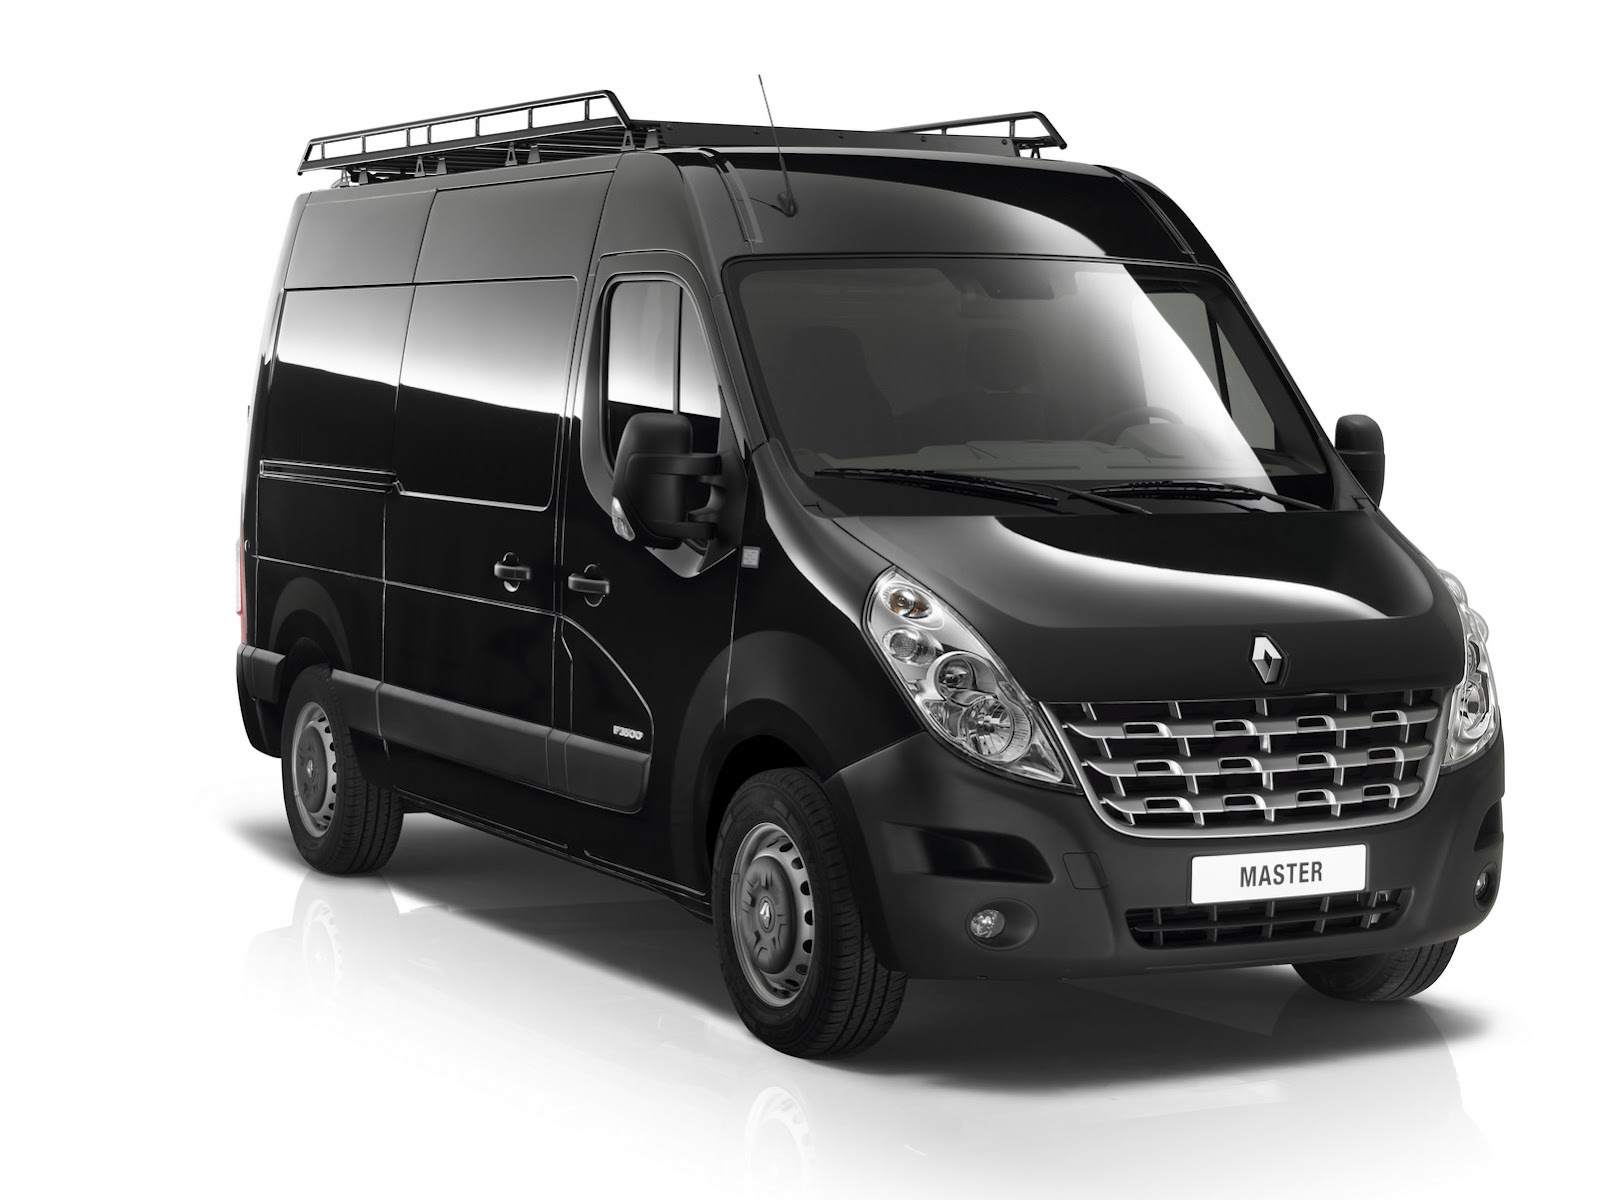 renault master range updated for 2012 autoevolution. Black Bedroom Furniture Sets. Home Design Ideas